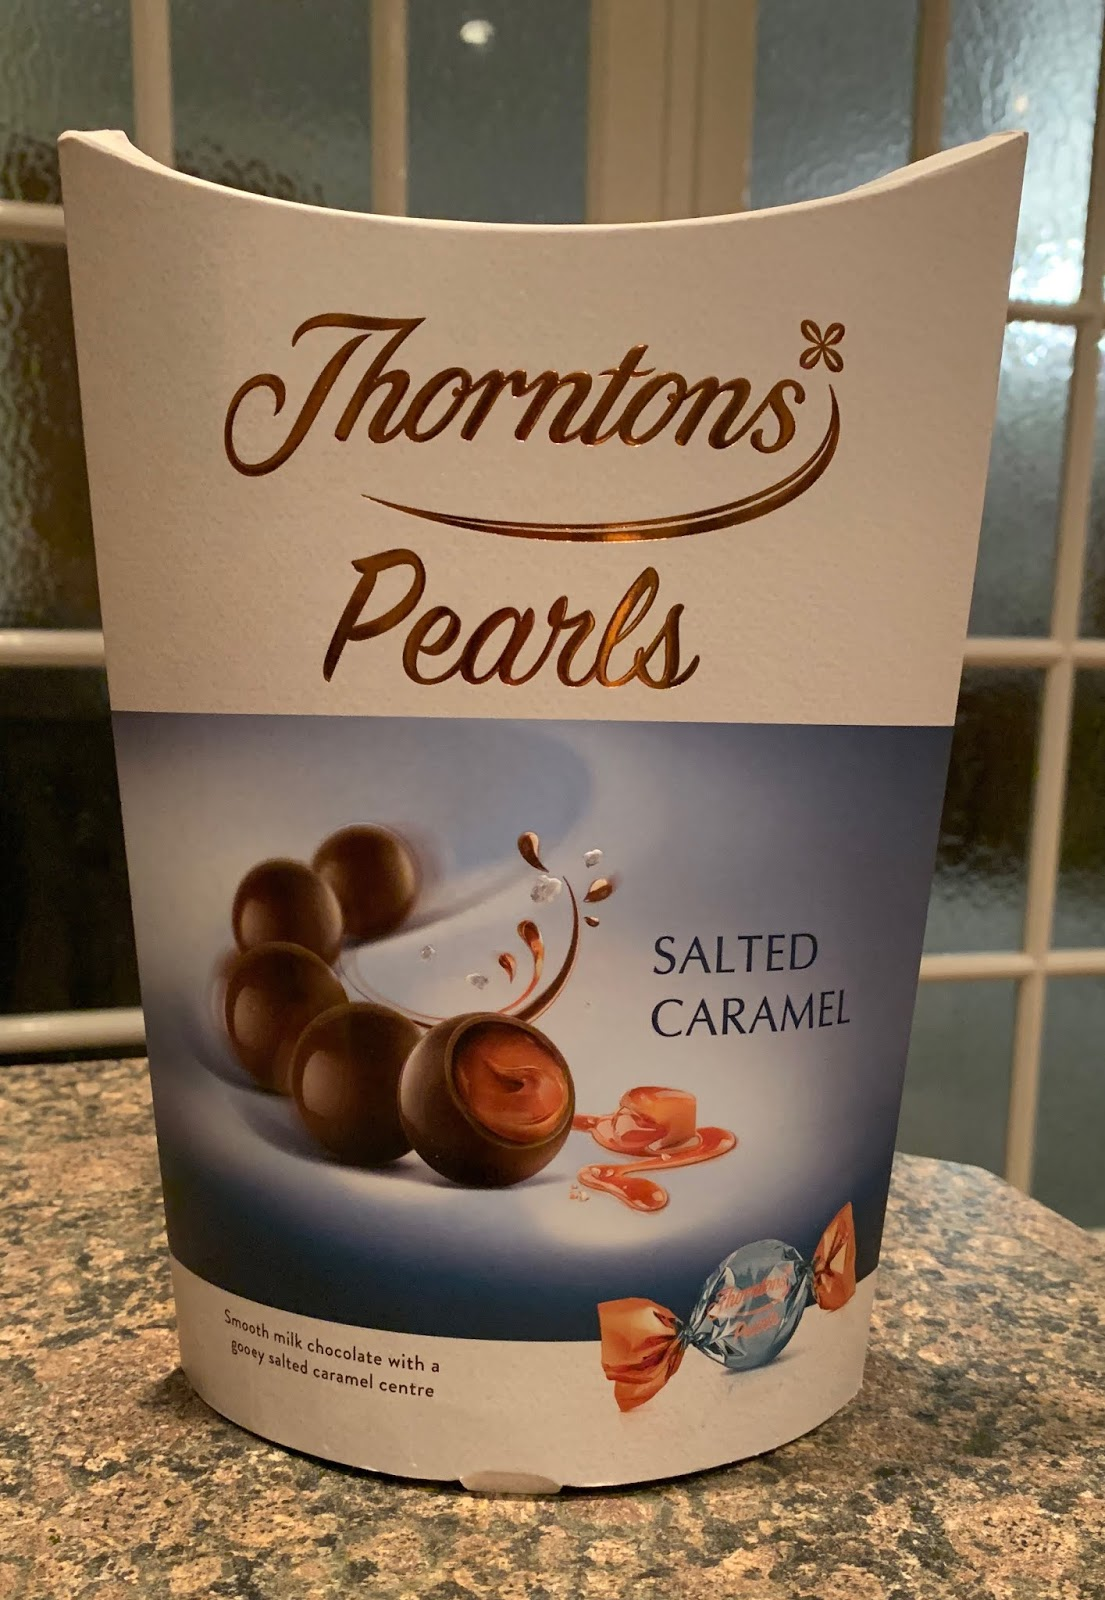 Foodstuff Finds Thorntons Pearls Salted Caramel Thorntons